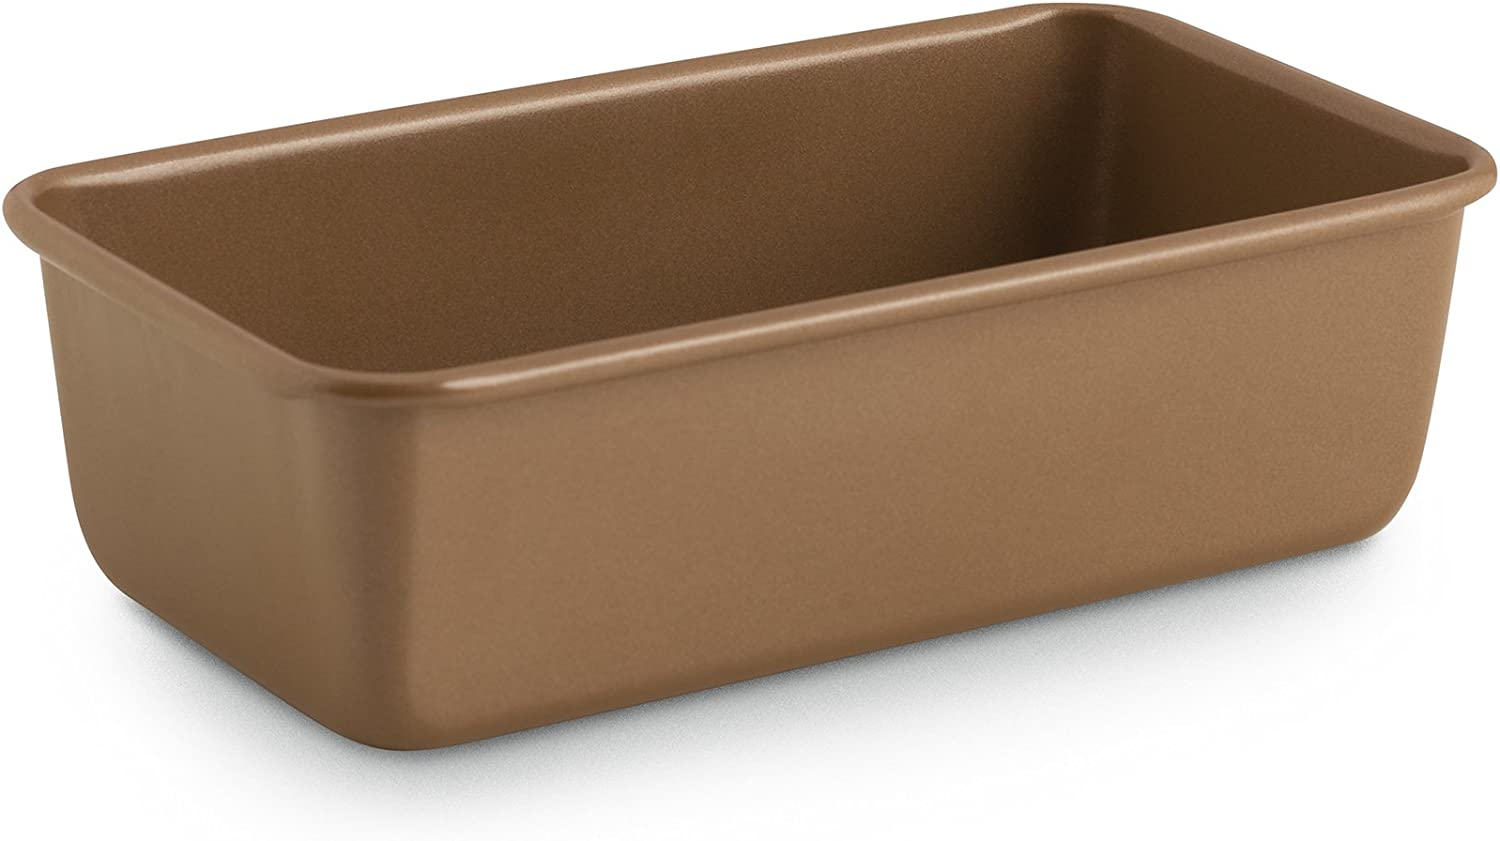 Simply Calphalon Nonstick Bakeware, Loaf Pan, 5-inch by 8-inch